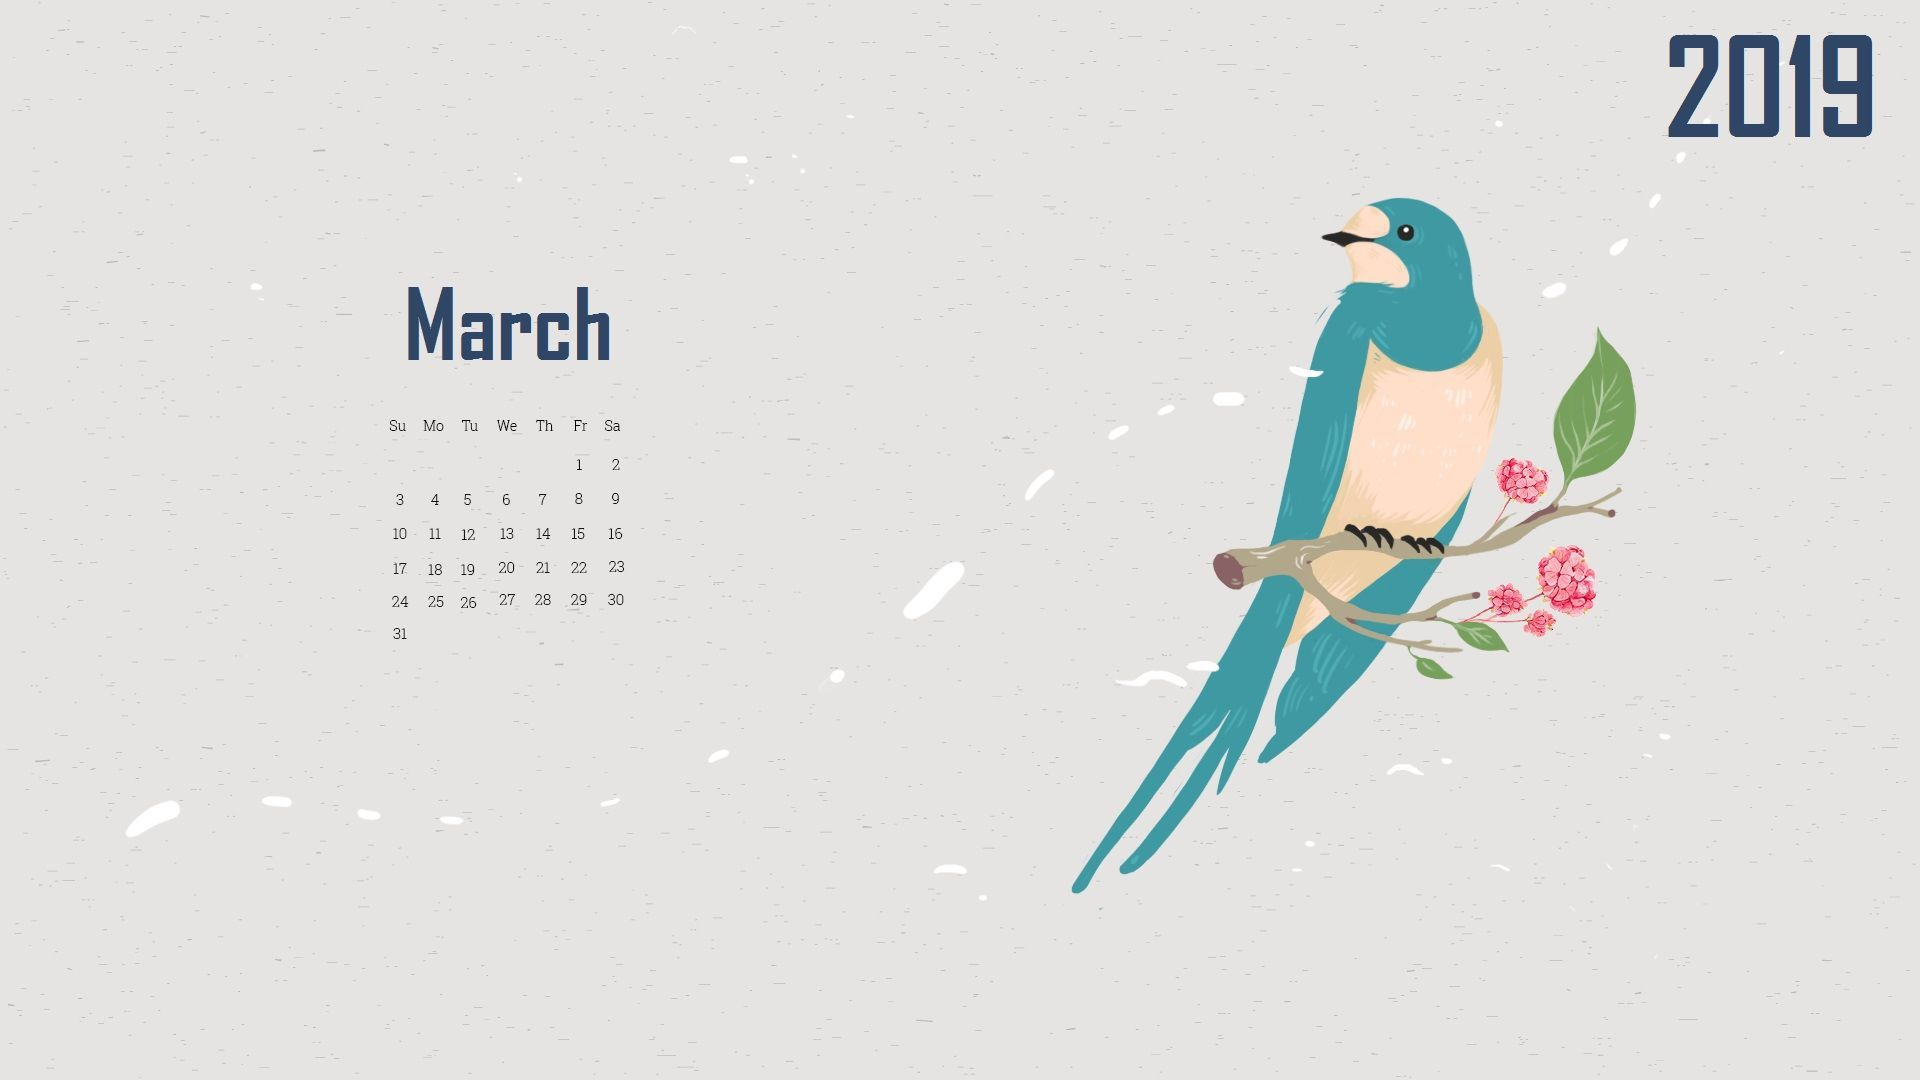 March 2019 Desktop Calendar Hd Wallpaper March2019 2019calendar Desktopc Calendar Wallpaper Desktop Wallpaper Calendar Computer Wallpaper Desktop Wallpapers